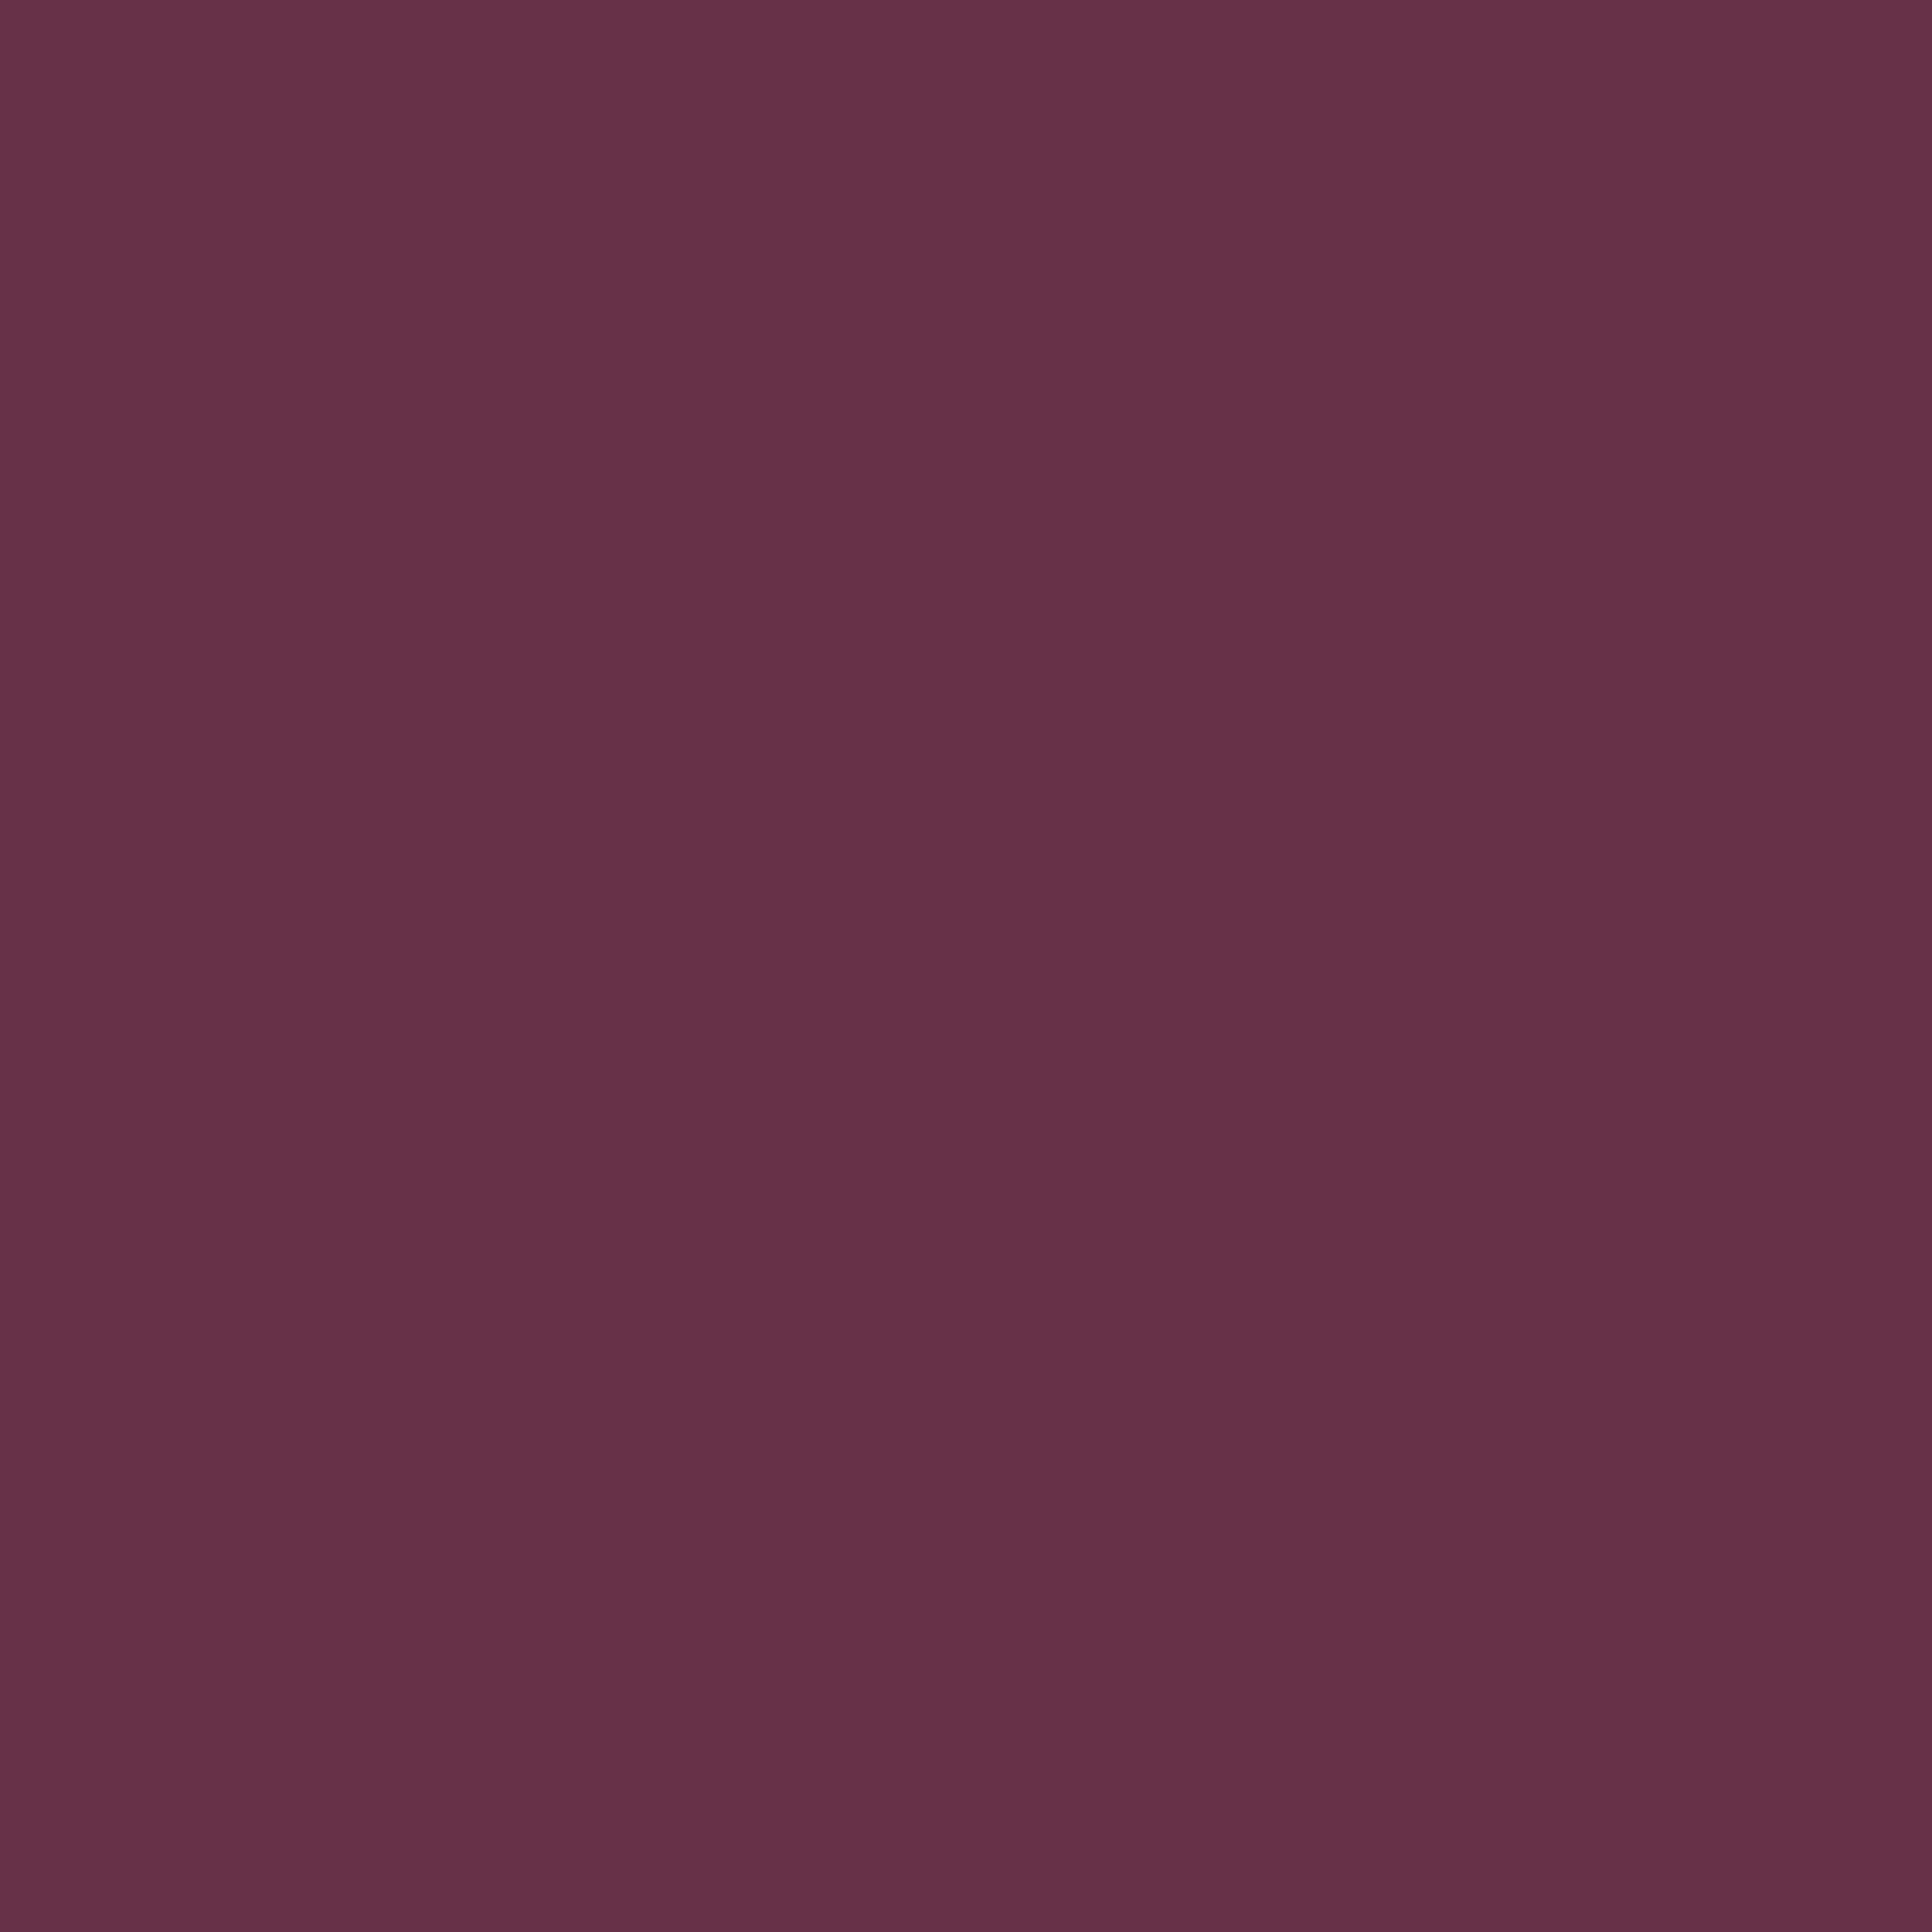 2732x2732 Old Mauve Solid Color Background